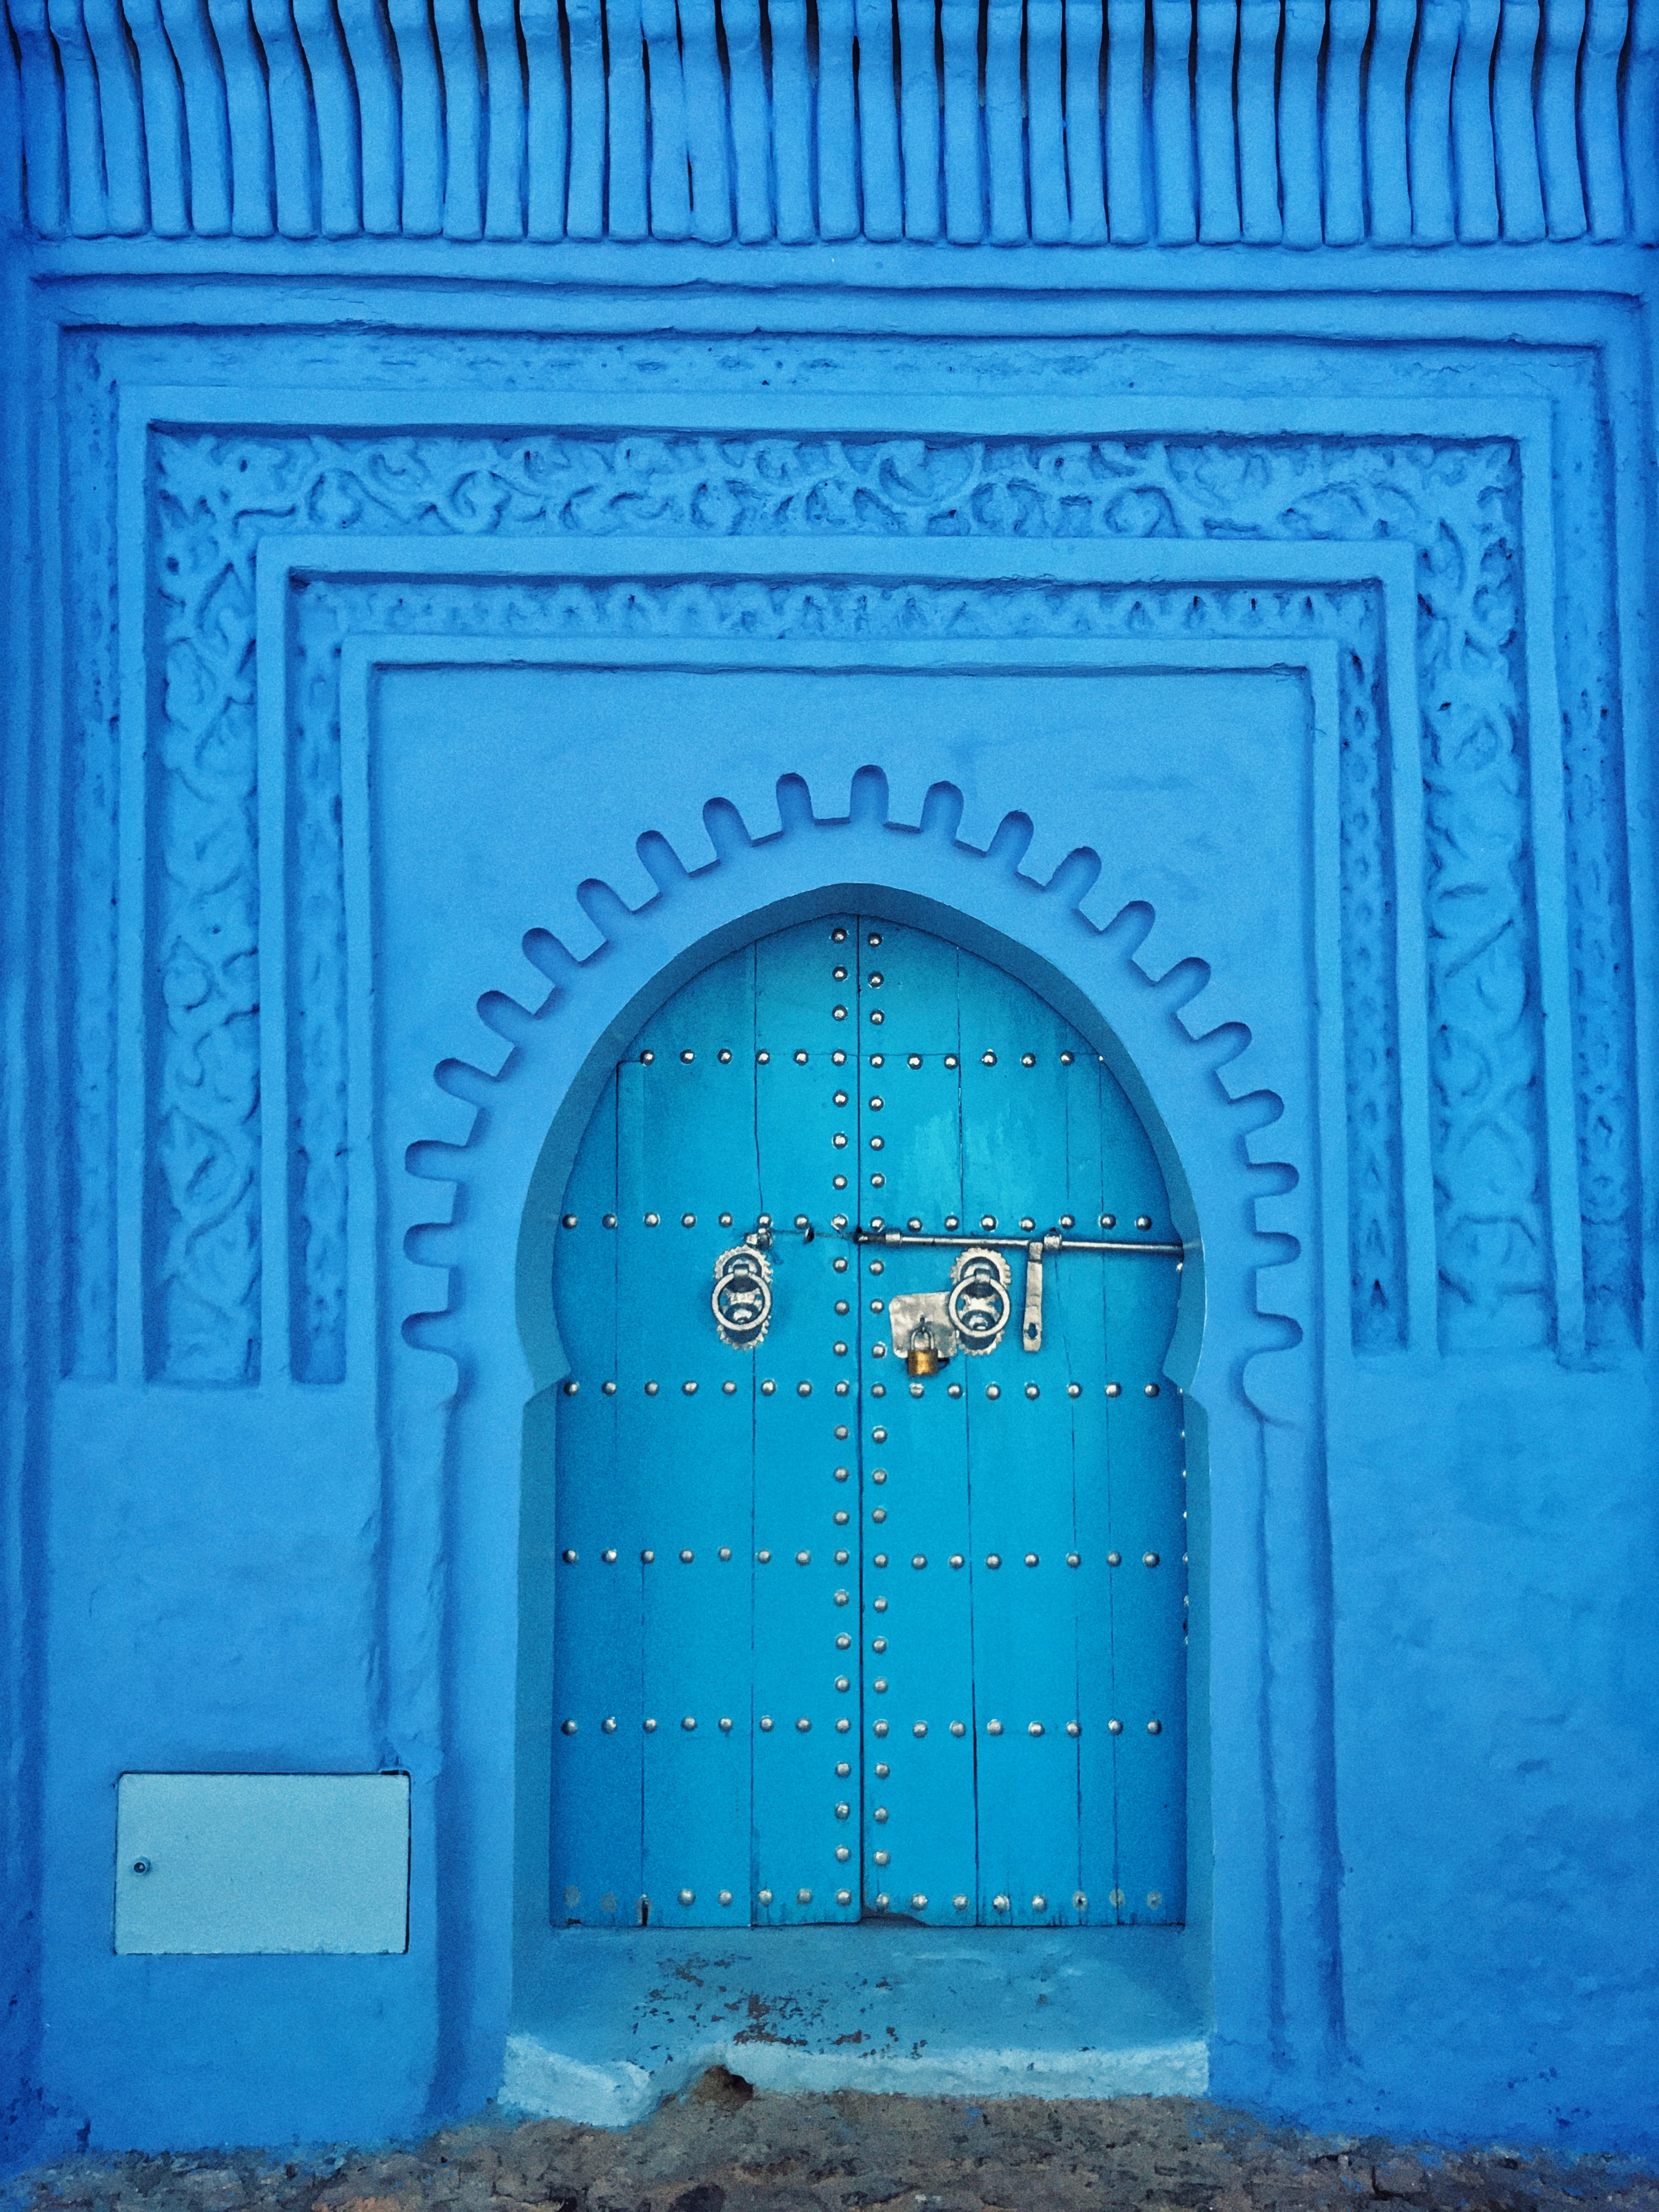 blue painted wall and door at daytime